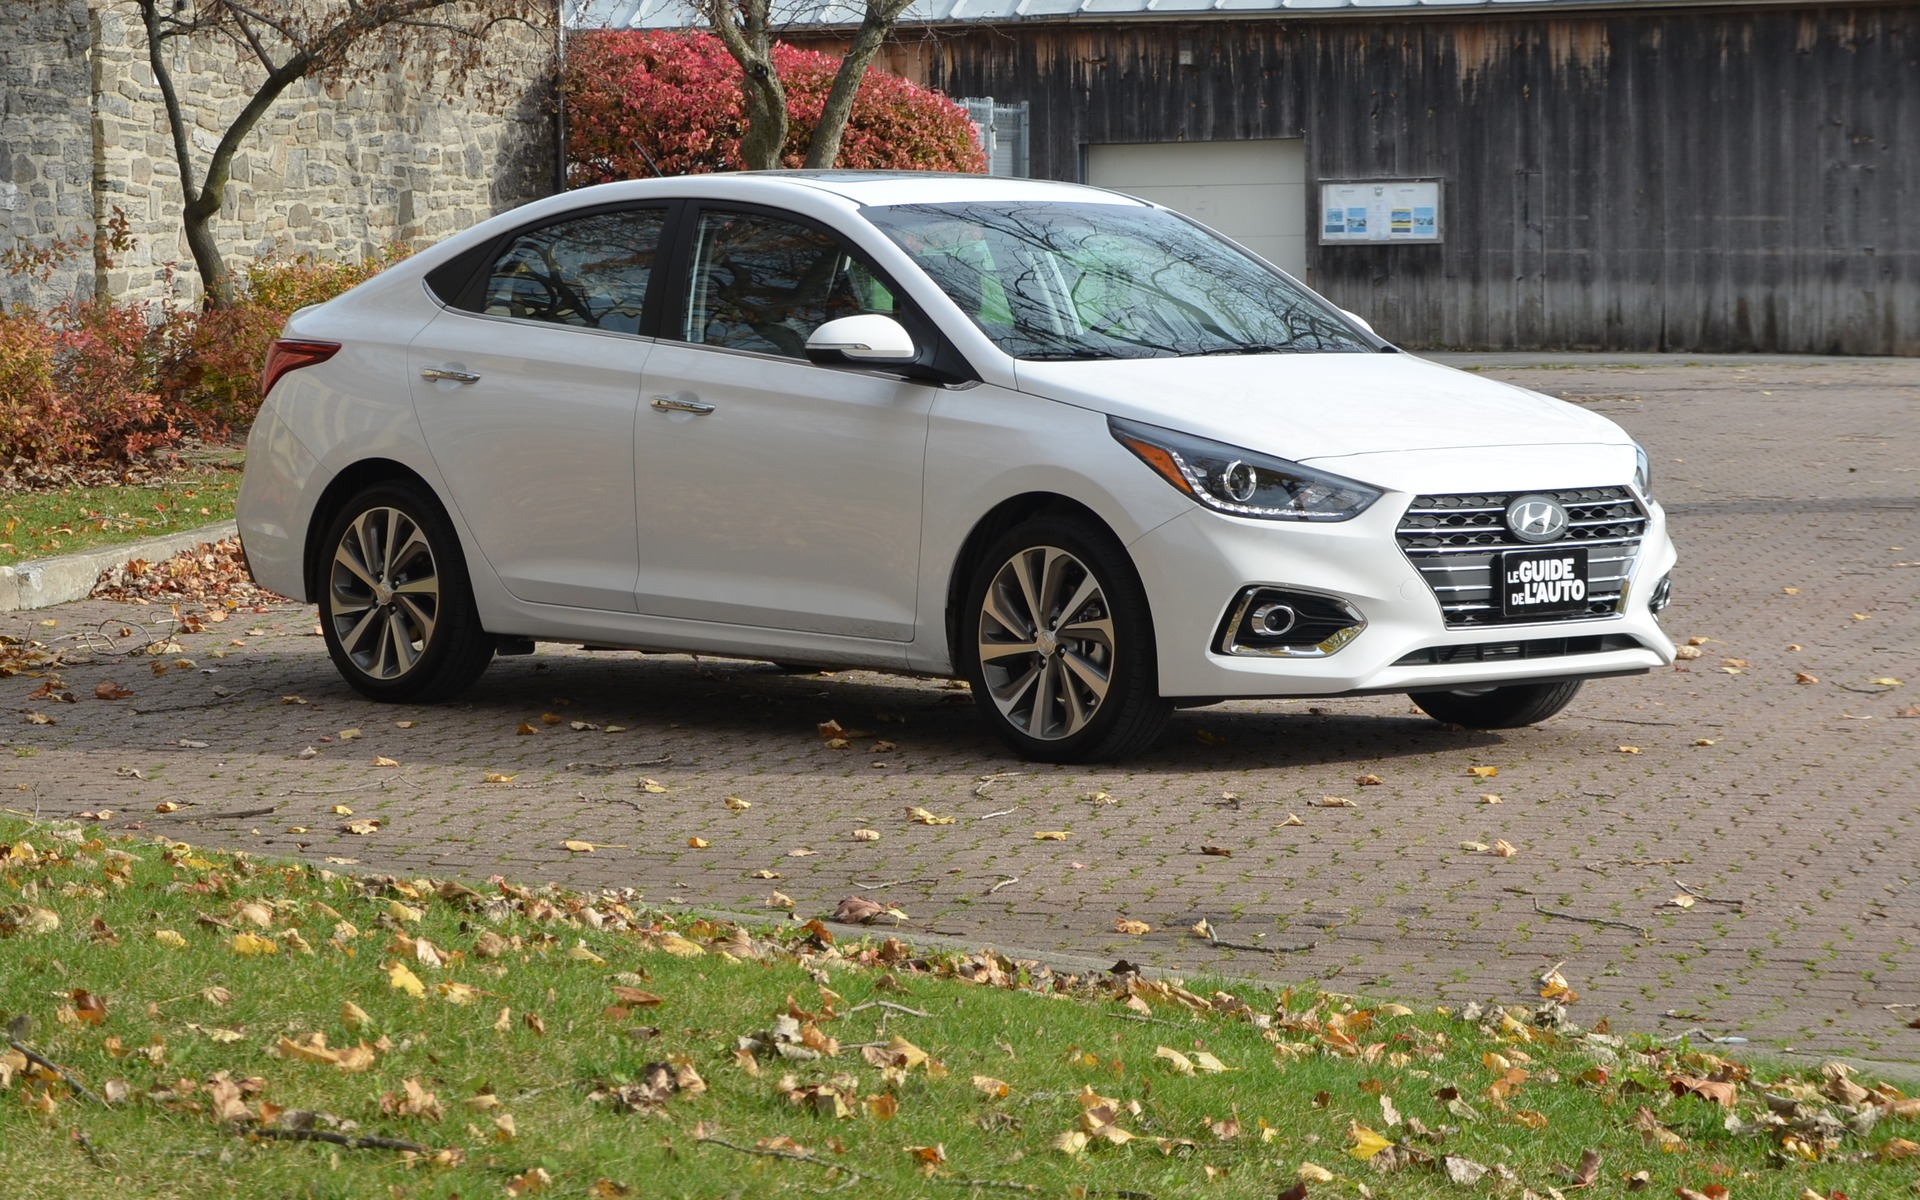 2018 hyundai accent a mini elantra that s subcompact to the max the car guide. Black Bedroom Furniture Sets. Home Design Ideas